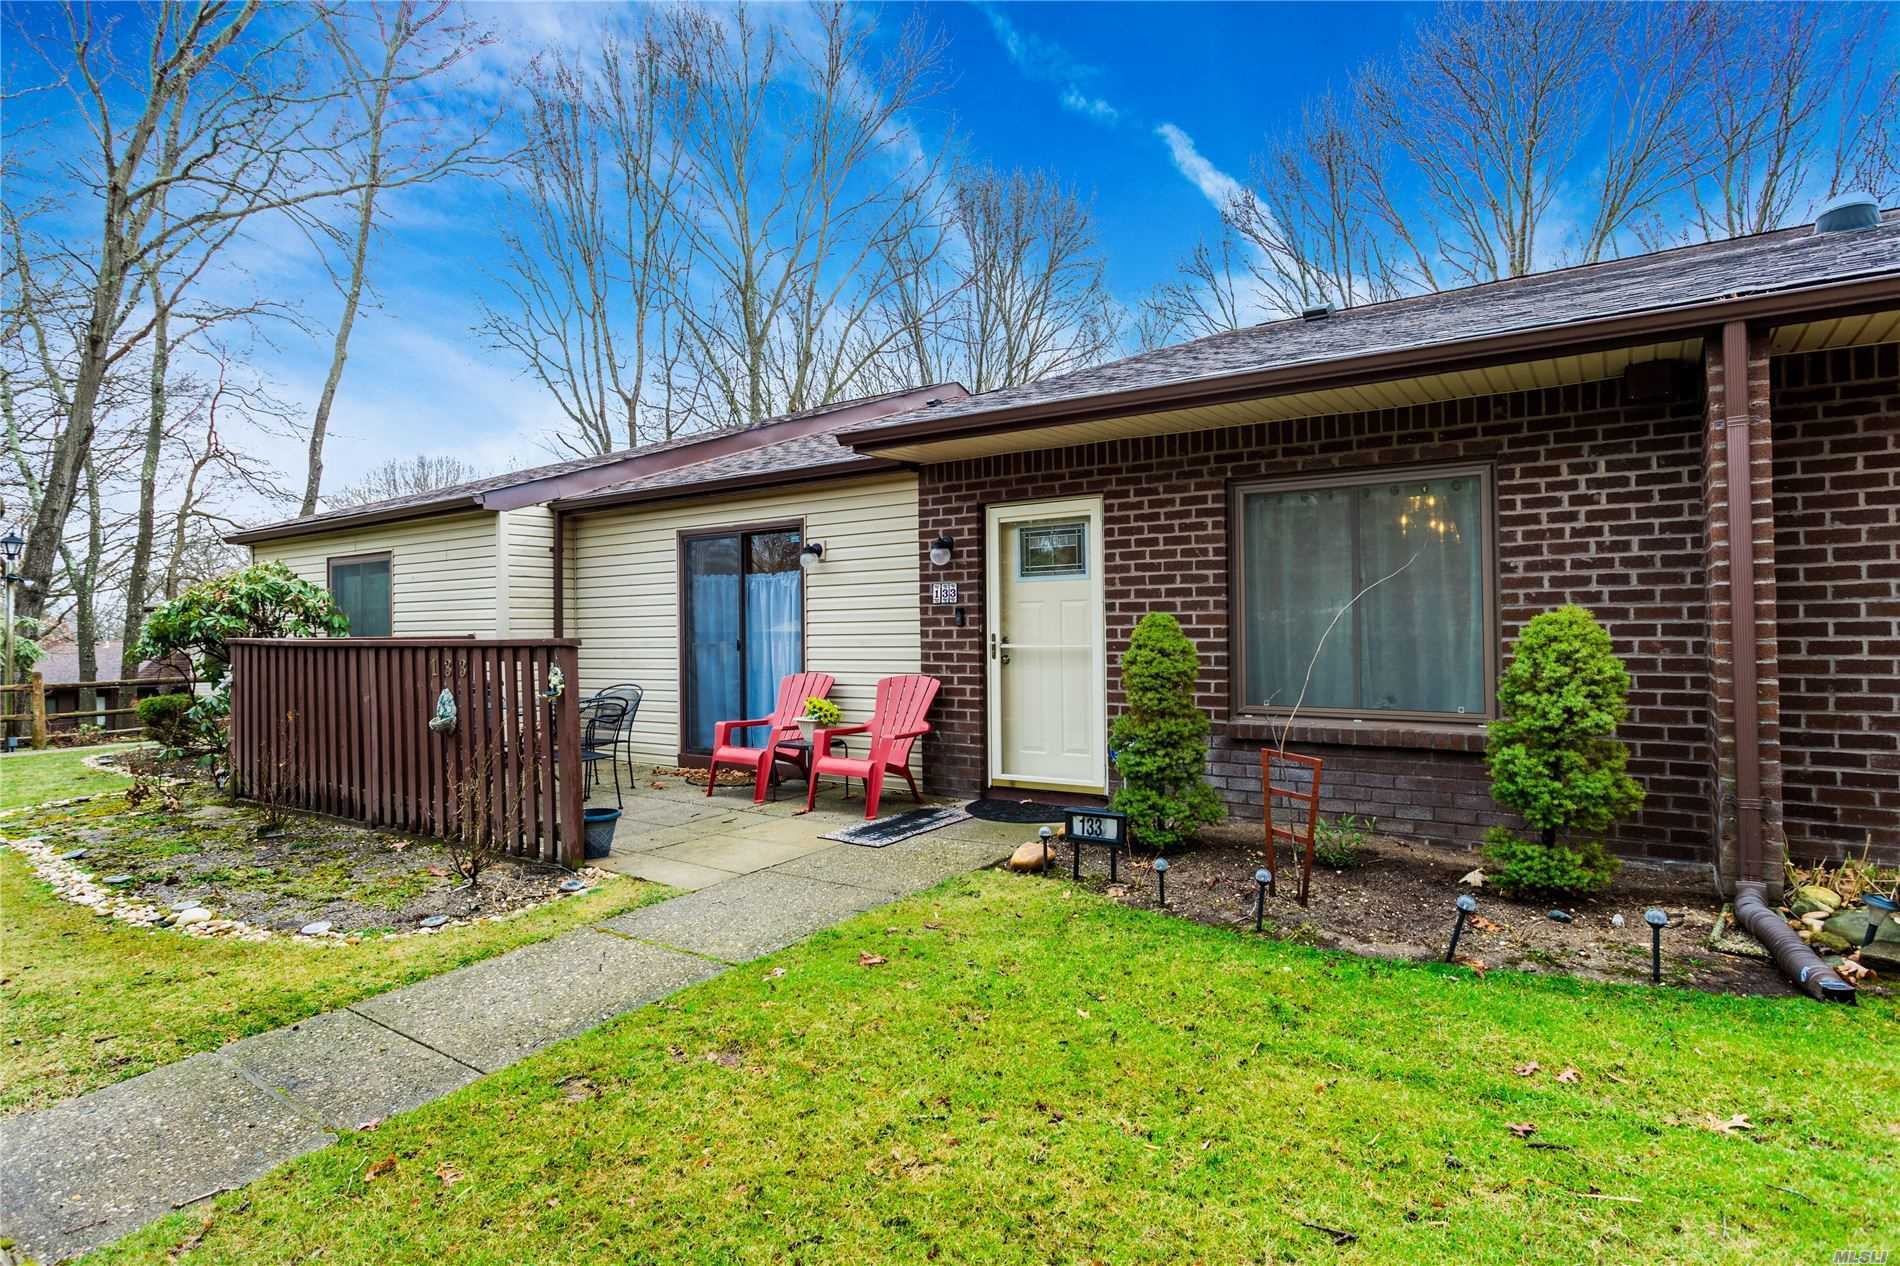 Property for sale at 133 Birchwood Road # 5, Coram NY 11727, Coram,  New York 11727